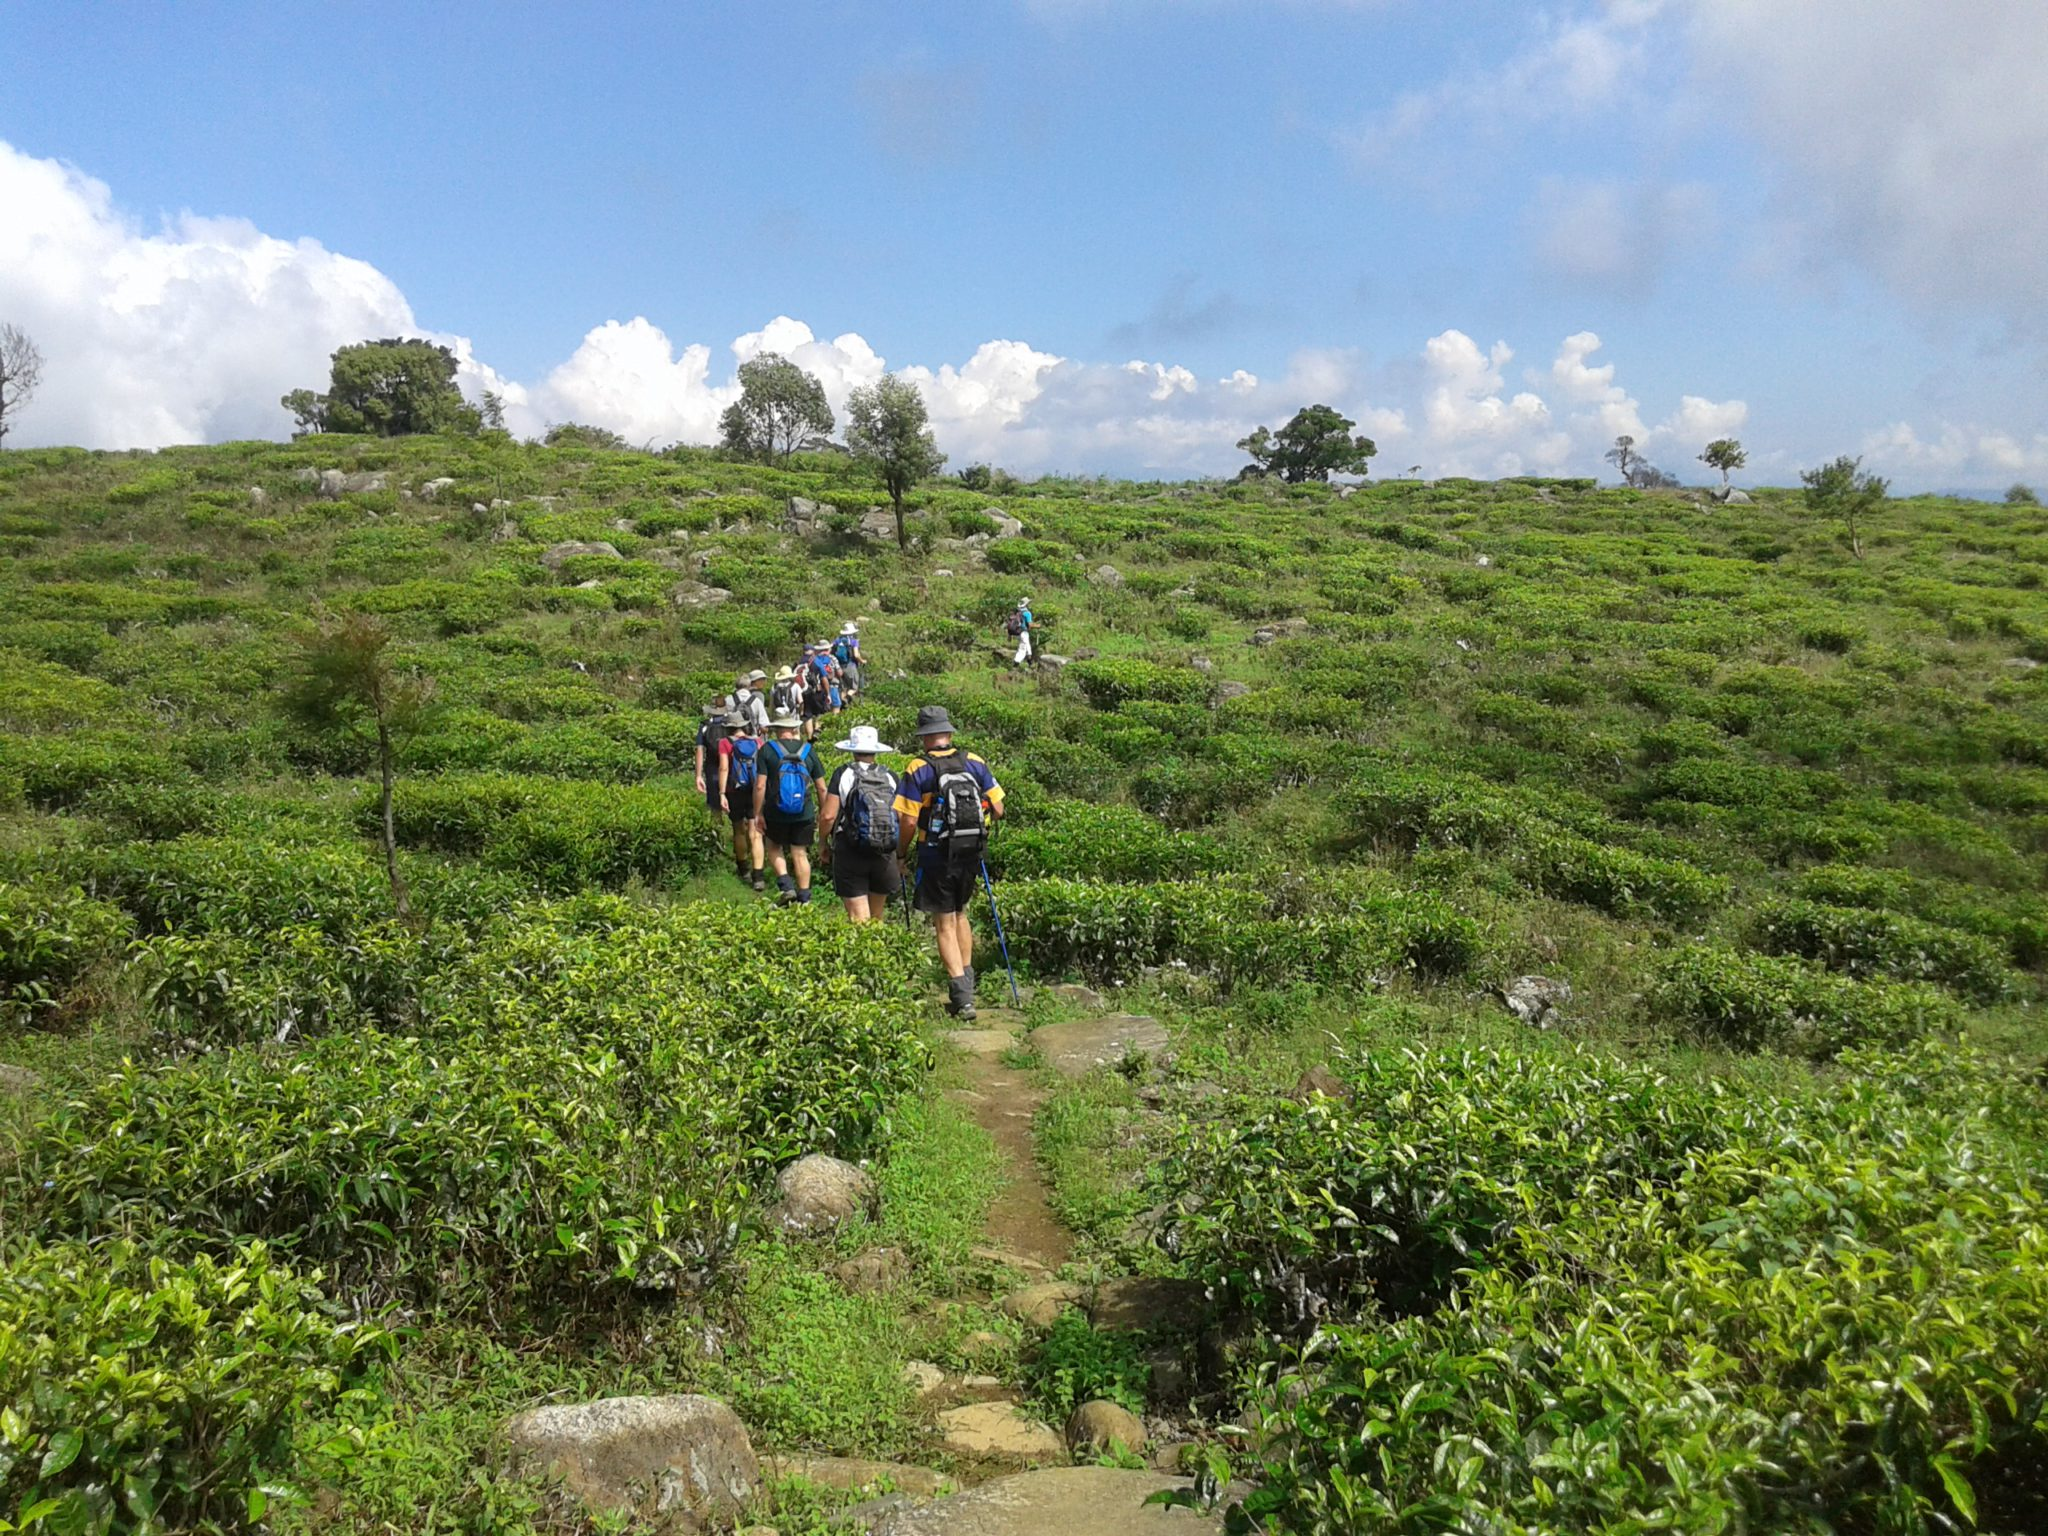 Sri Lanka hiking experience: Tea plantation hike and picnic trip